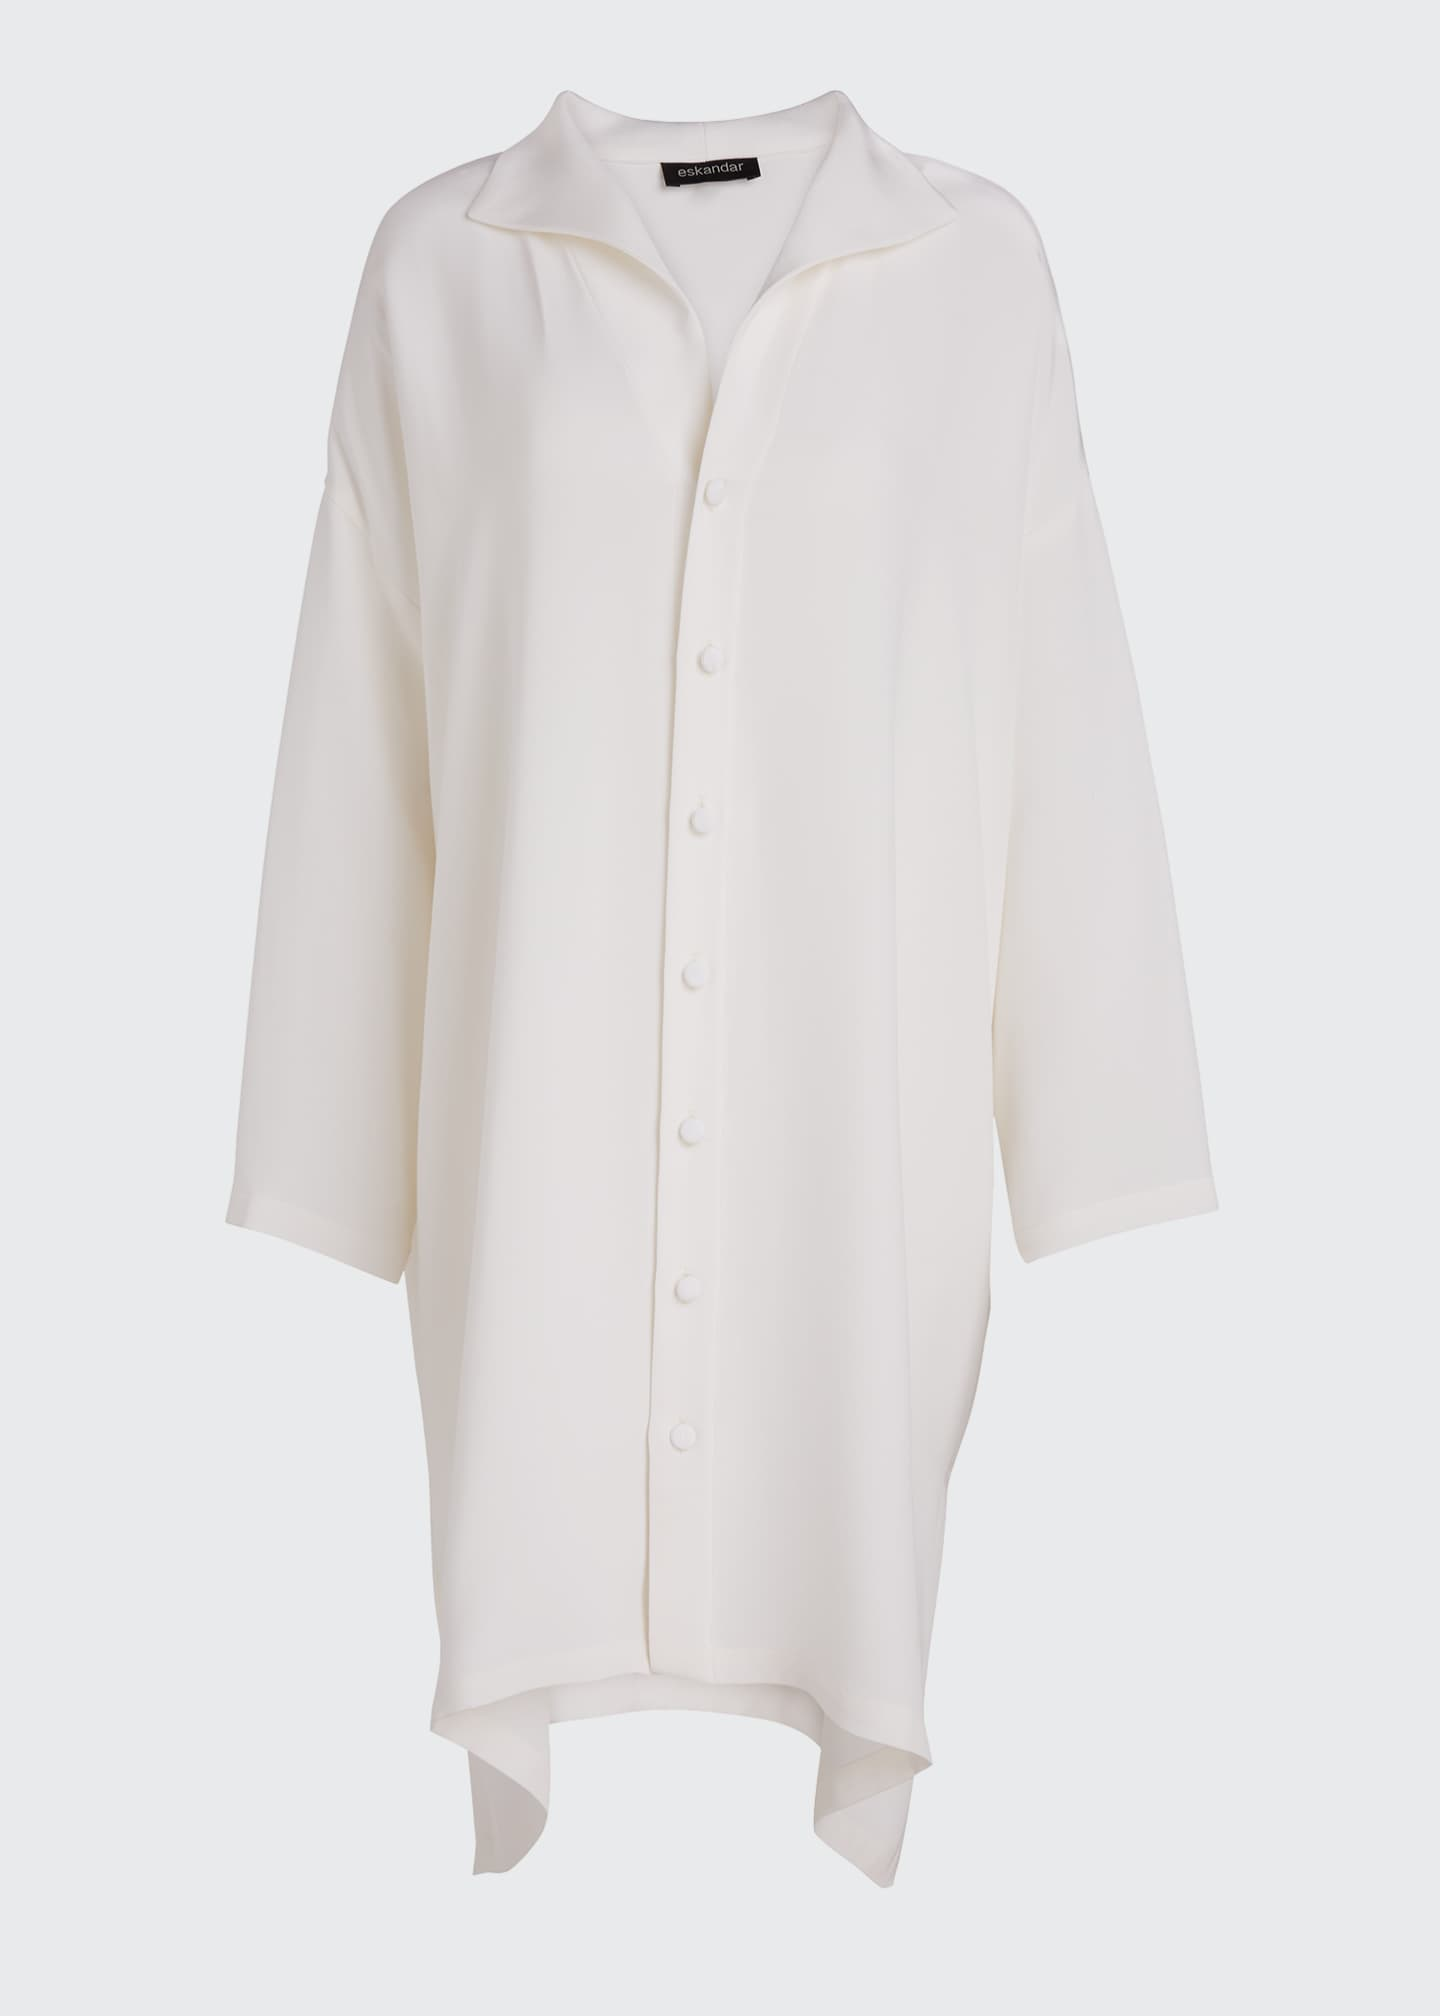 Image 5 of 5: Wide A-line Mid Weight Silk Long Shirt